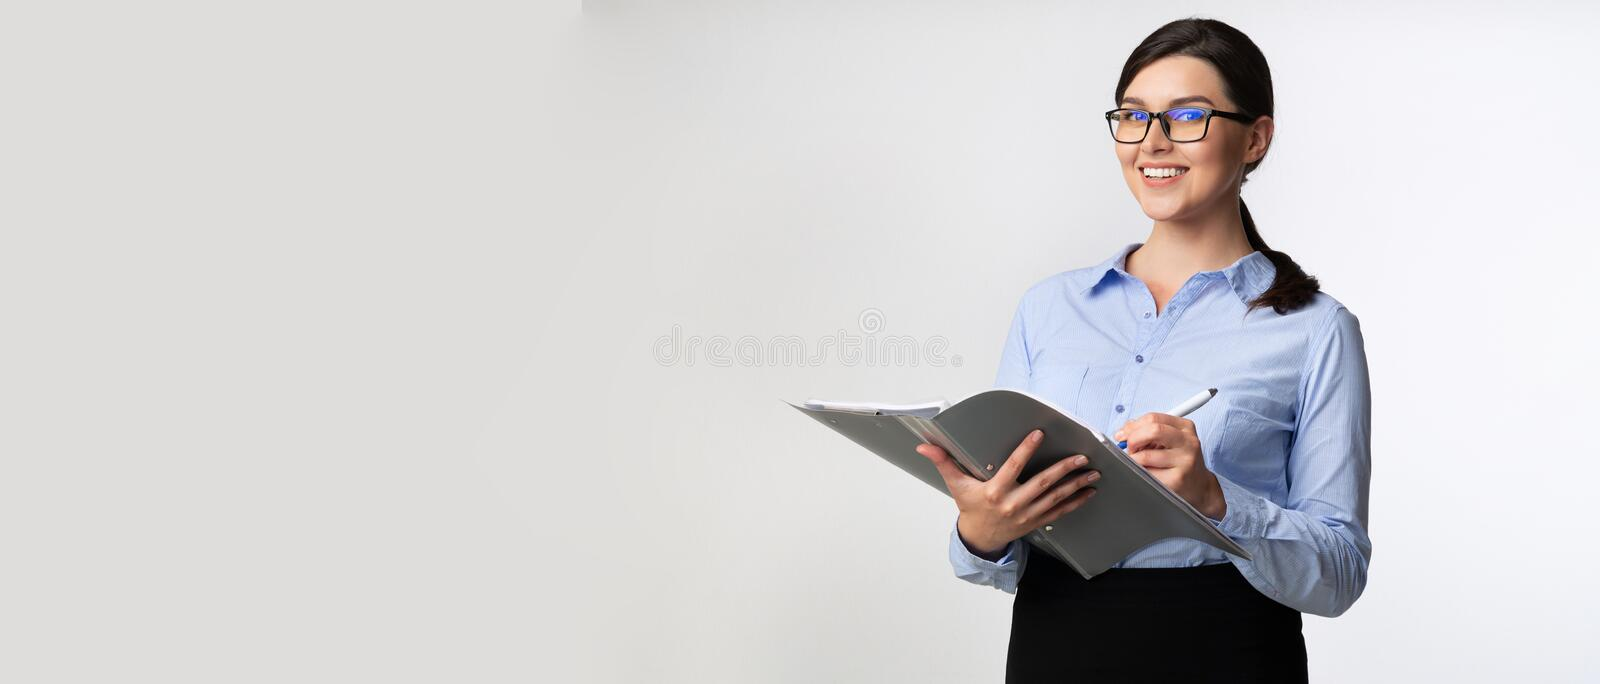 Businesswoman Taking Notes Holding Folder Looking At Camera, Panorama. Confident Businesswoman Taking Notes Holding Folder Looking At Camera On White Studio royalty free stock images